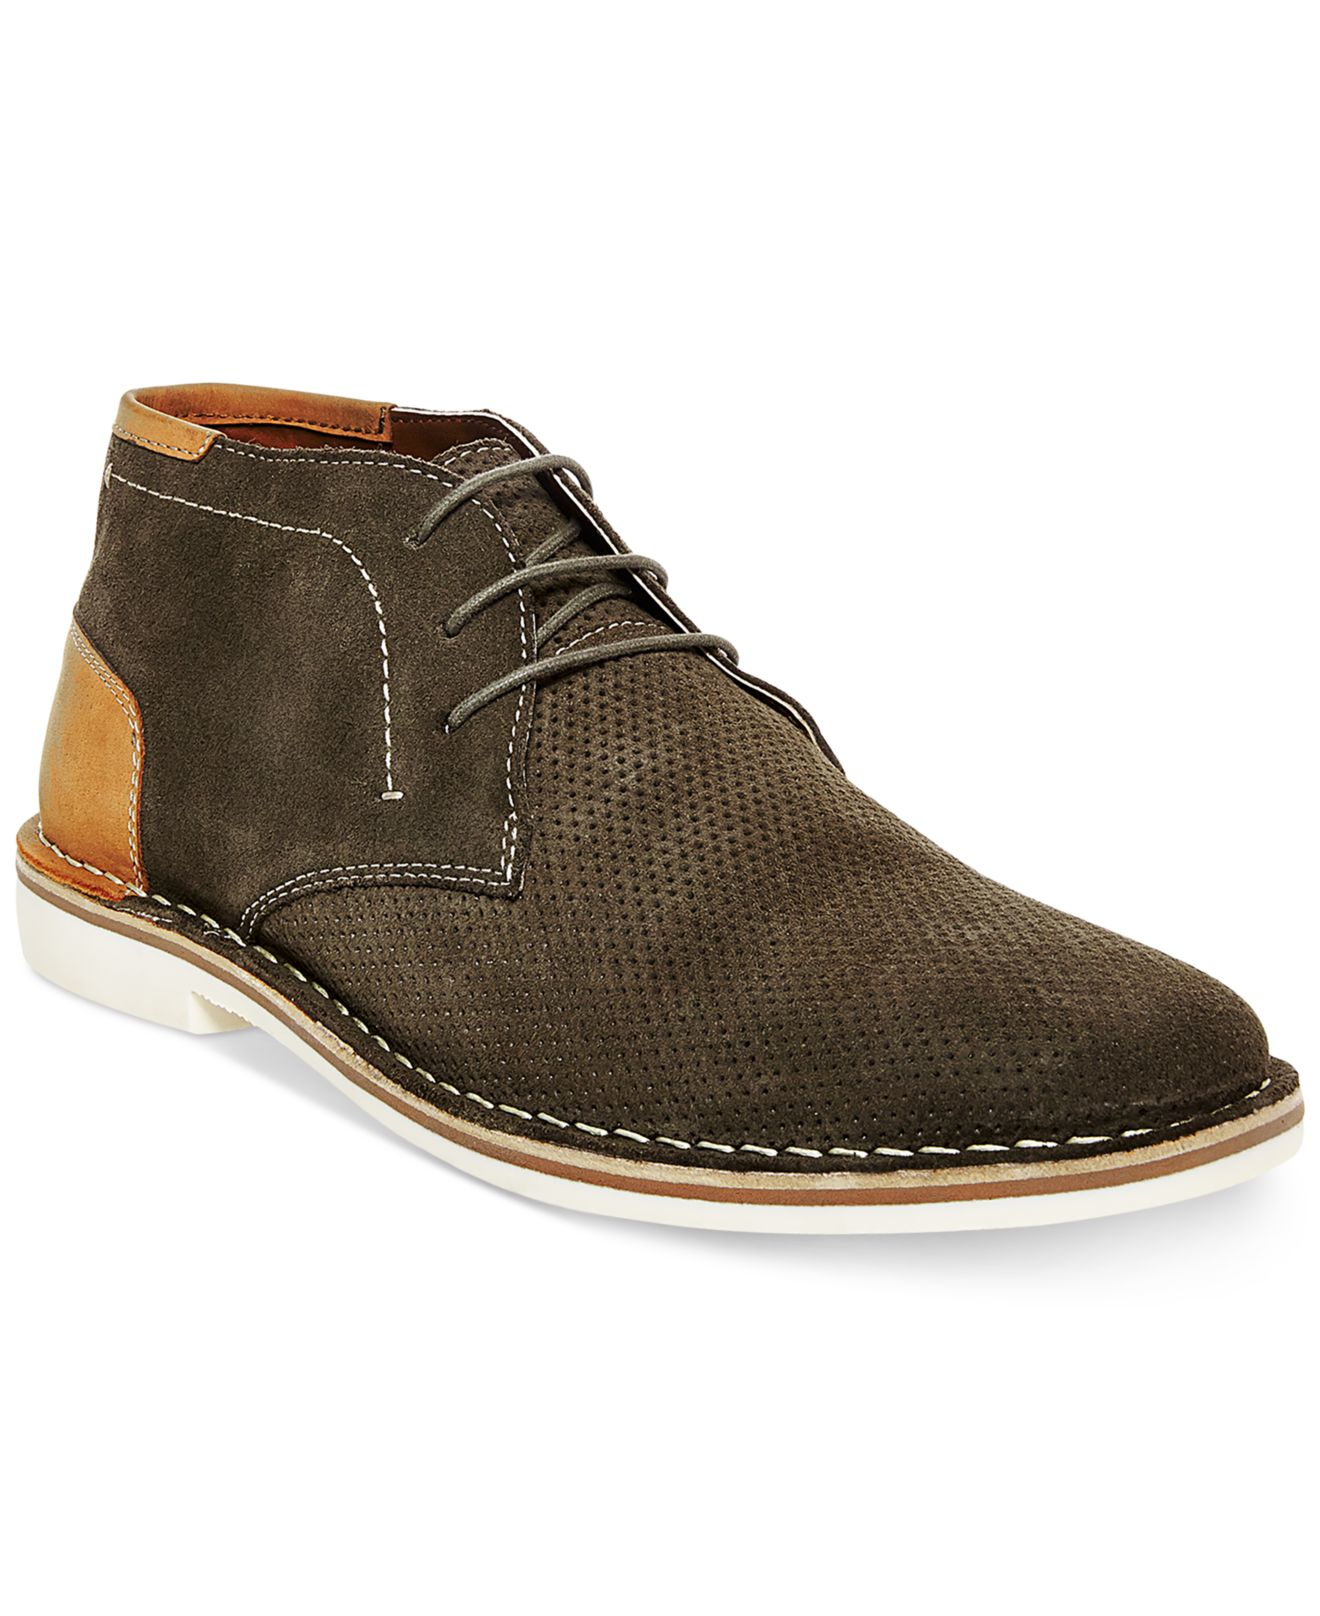 Ultra Soft Brown Leather Casual Shoes Mens